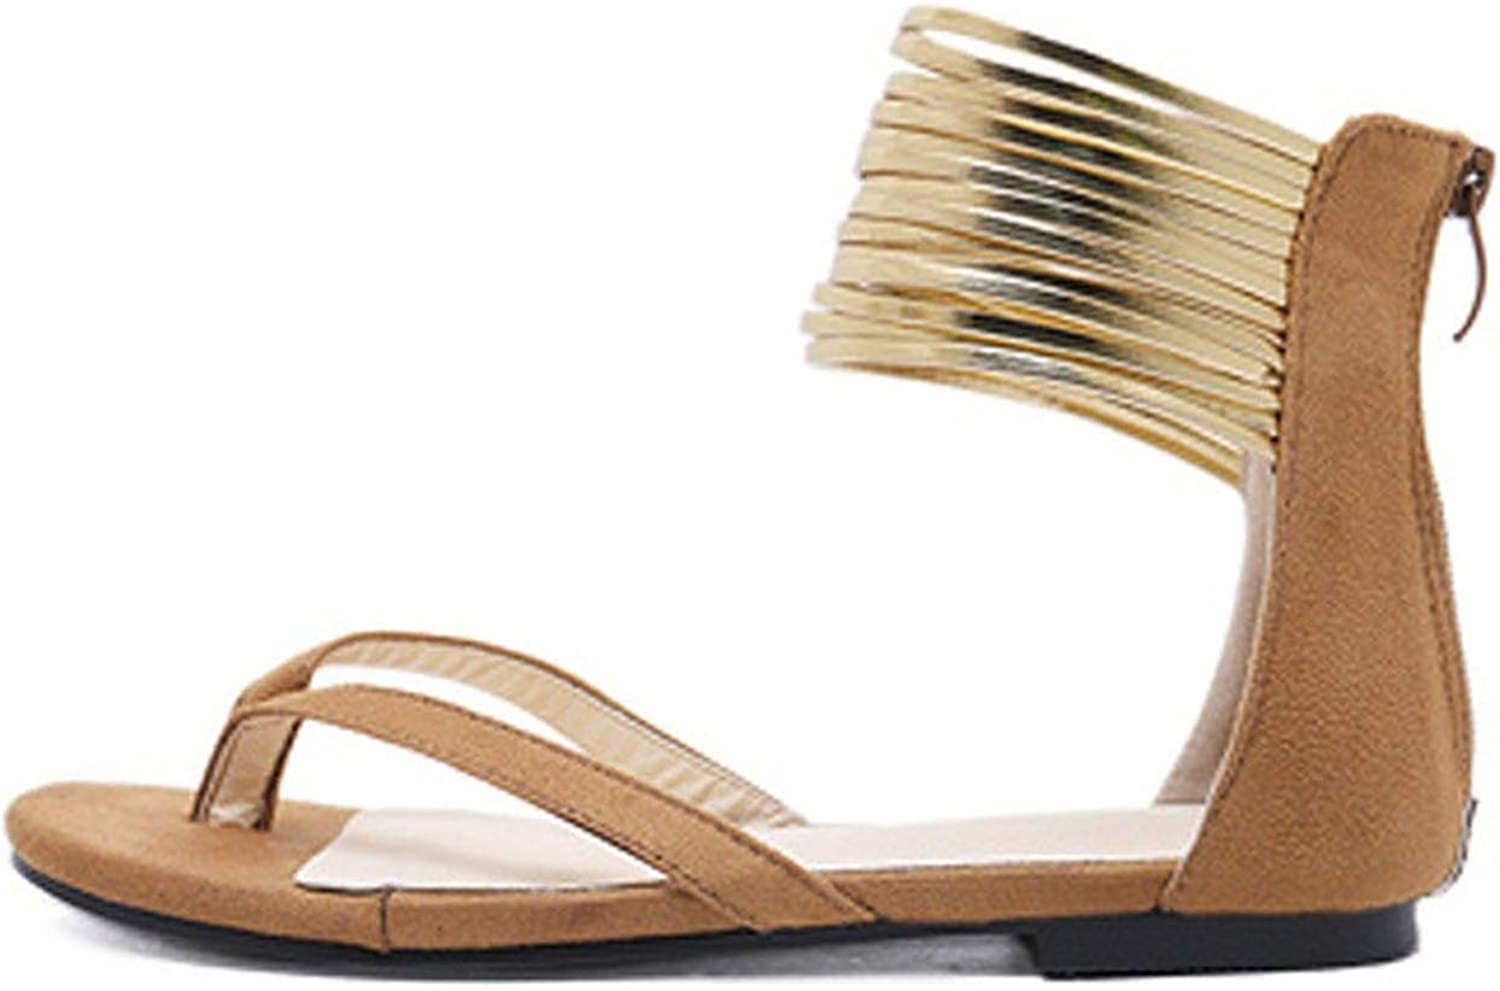 Fantastic-Journey-sandals Summer Casual Sandals Foot Ring Footwear with Bow Chaussure Femme Rome Style Flats